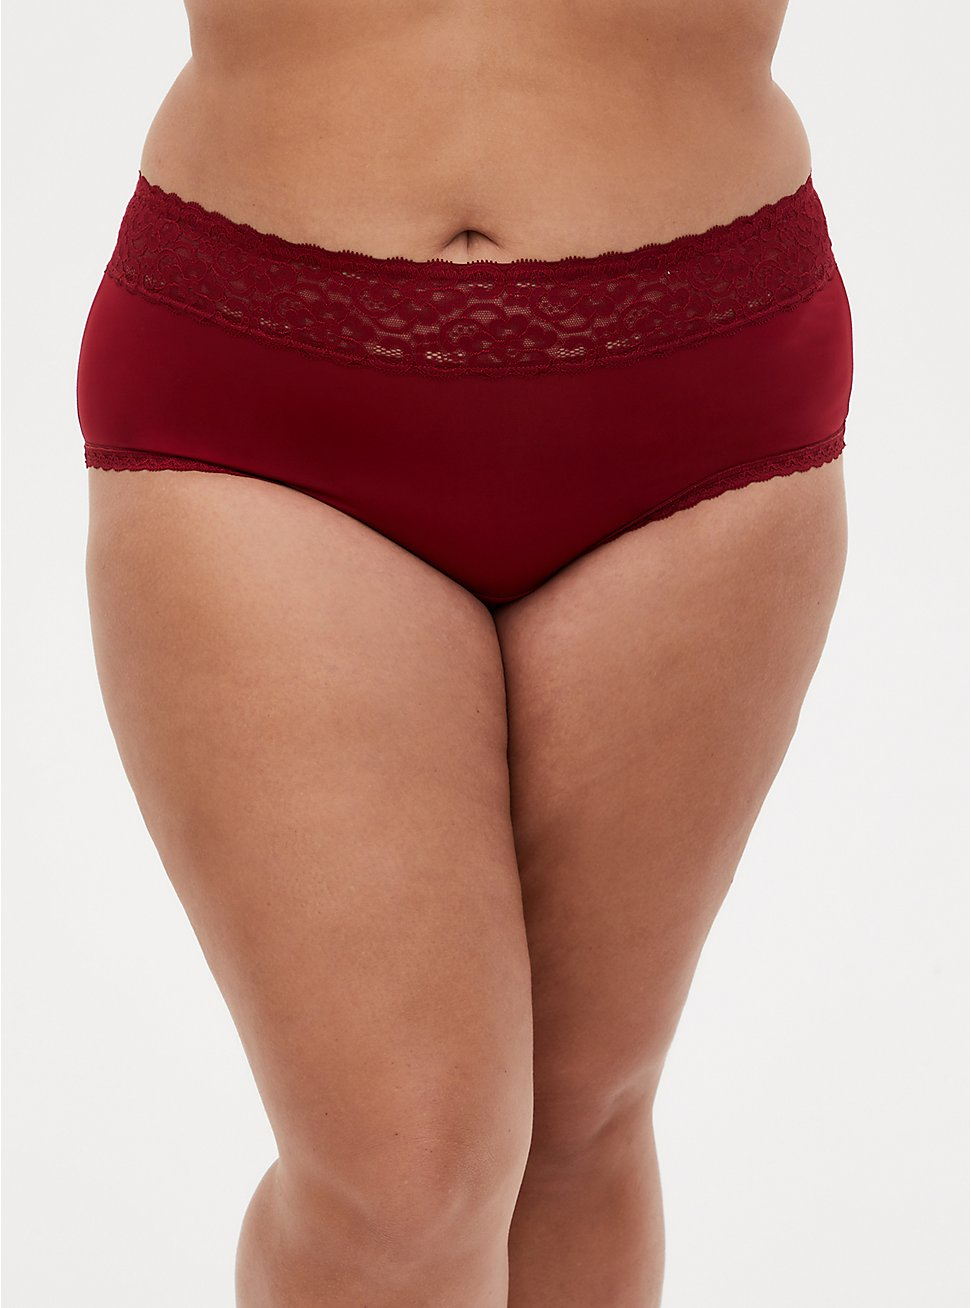 Dark Red Second Skin Wide Lace Cheeky Panty, BIKING RED, hi-res